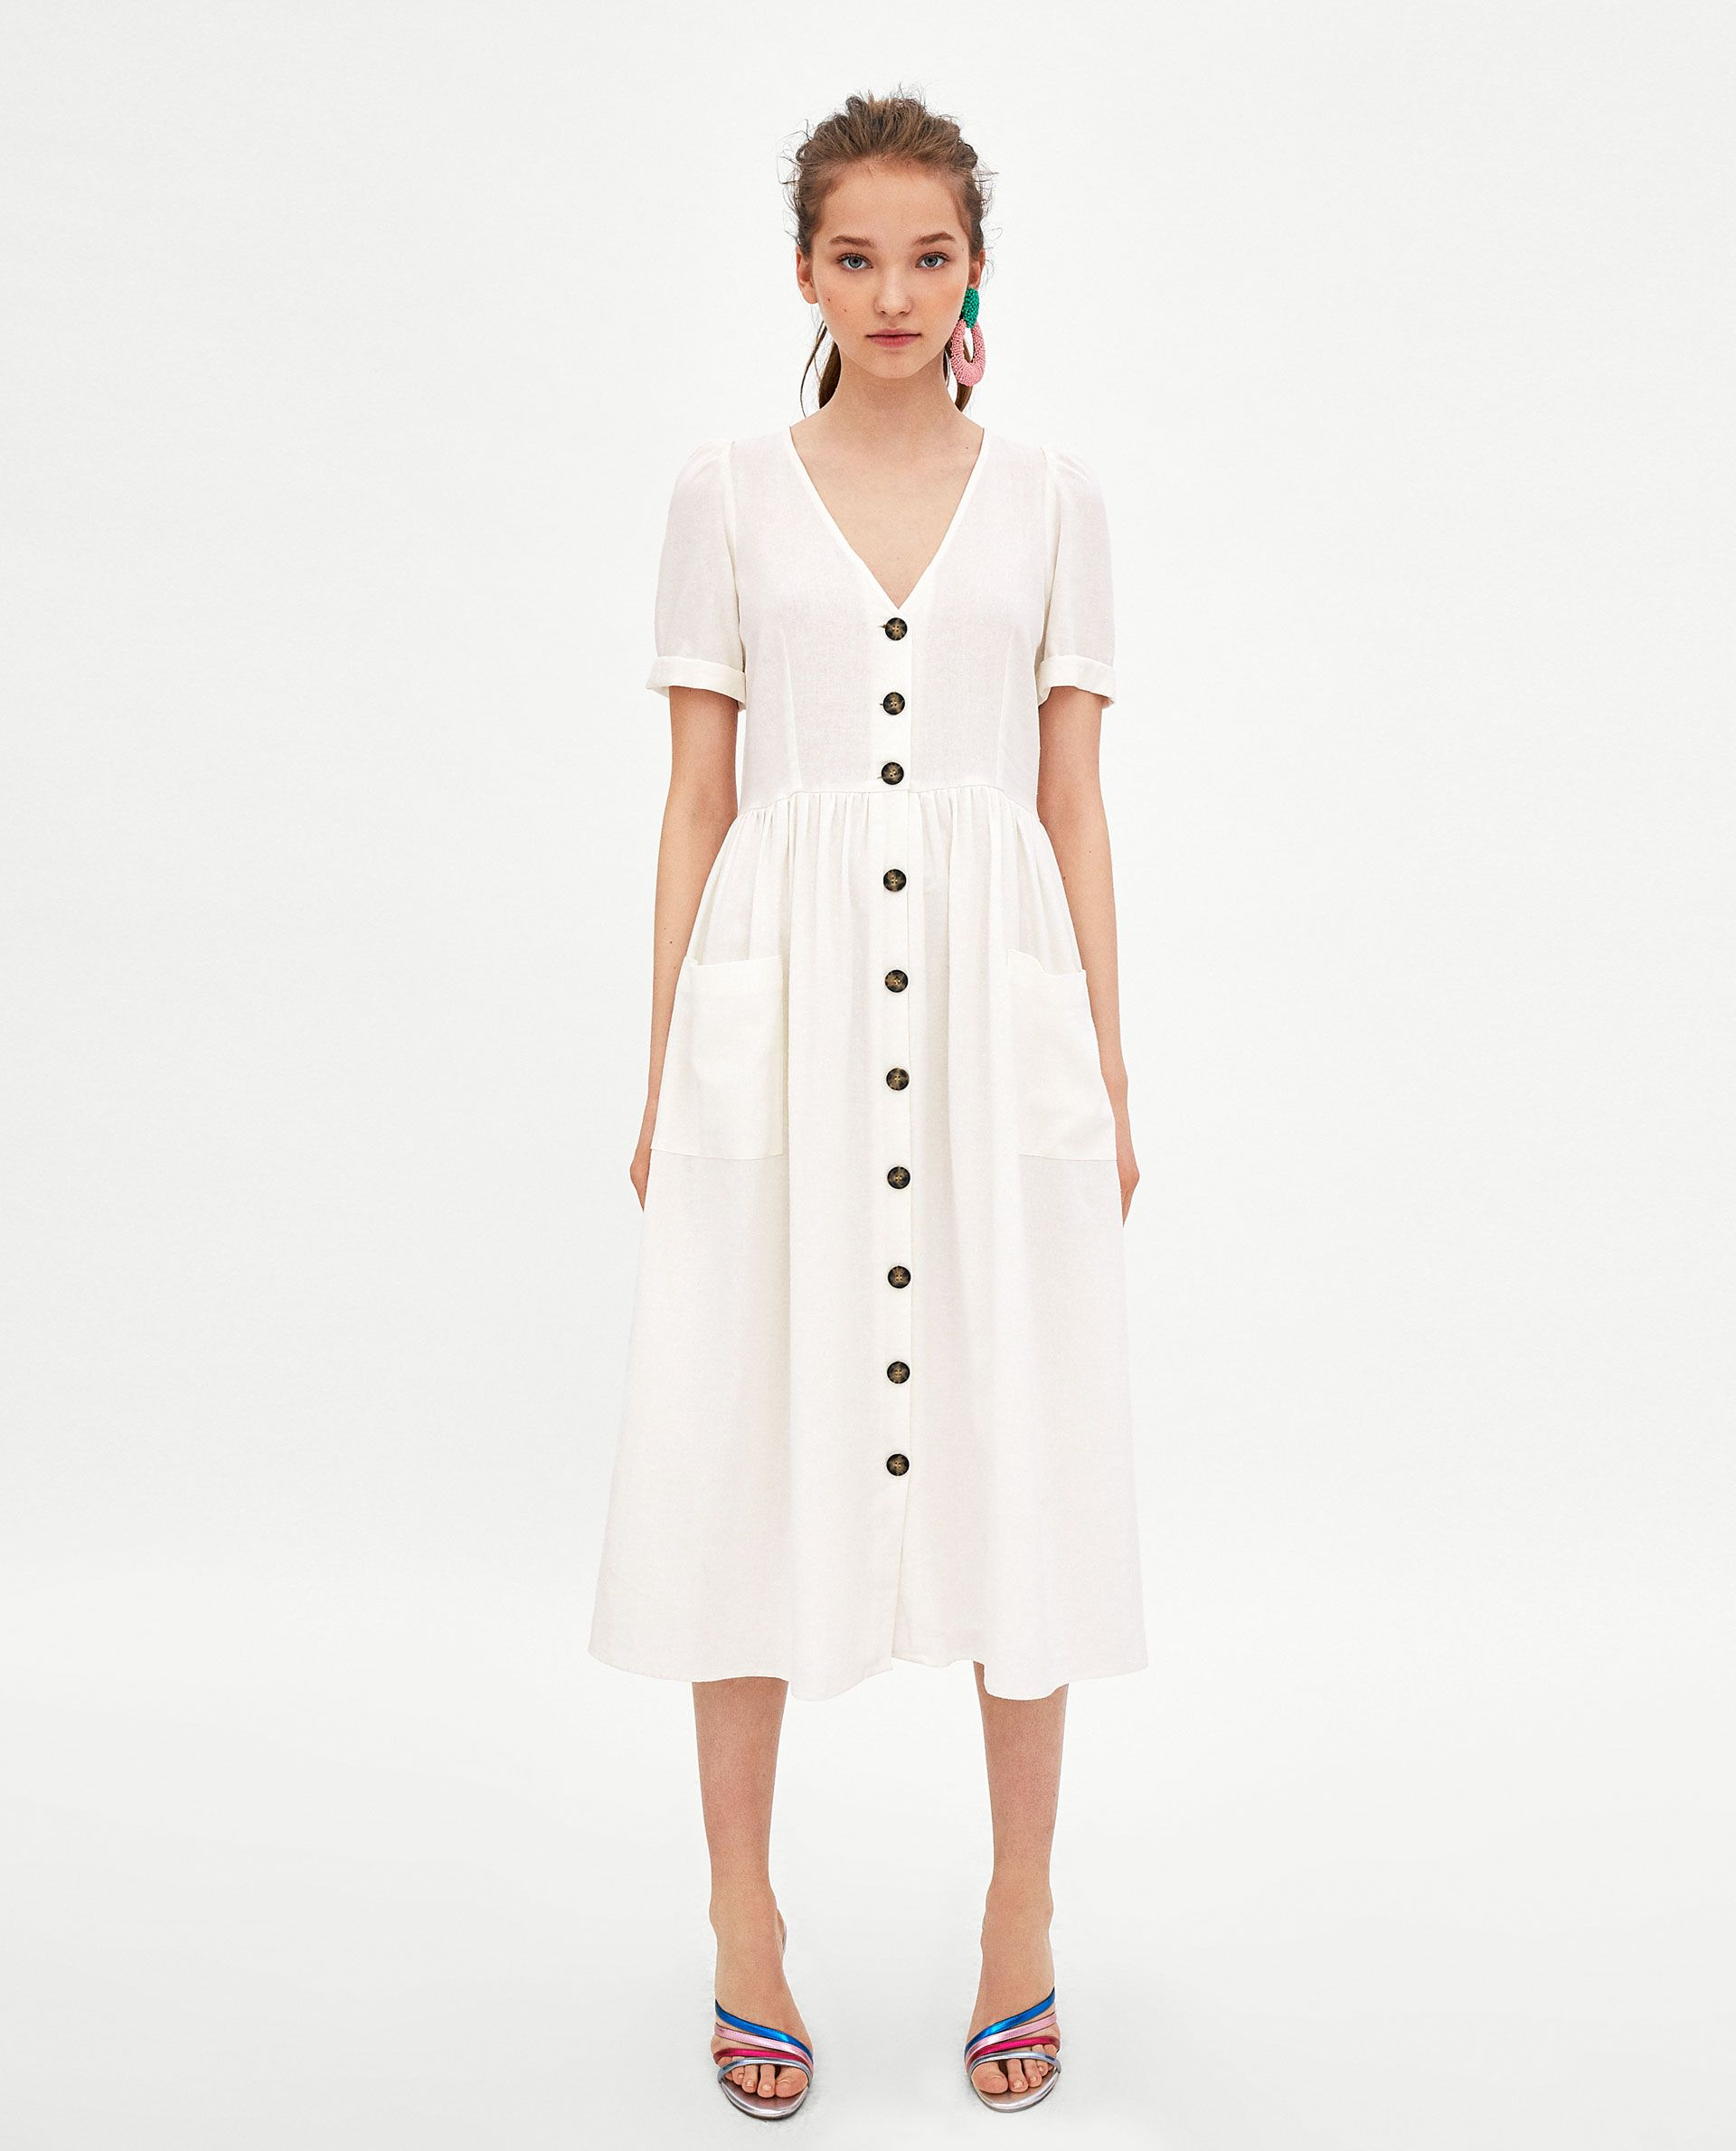 05483331683 ZARA - WOMAN - MIDI DRESS WITH BUTTONS